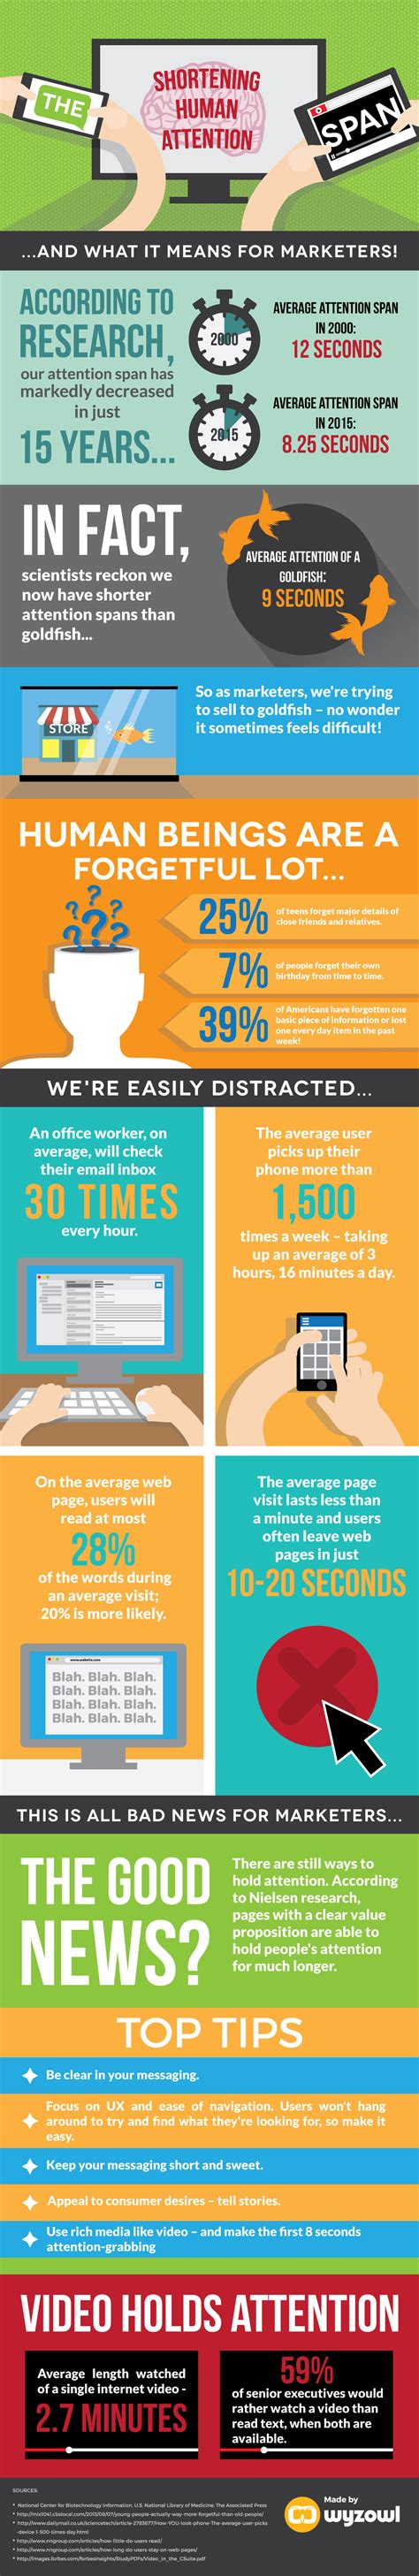 span in human years it s official we shorter attention spans than goldfish infographic